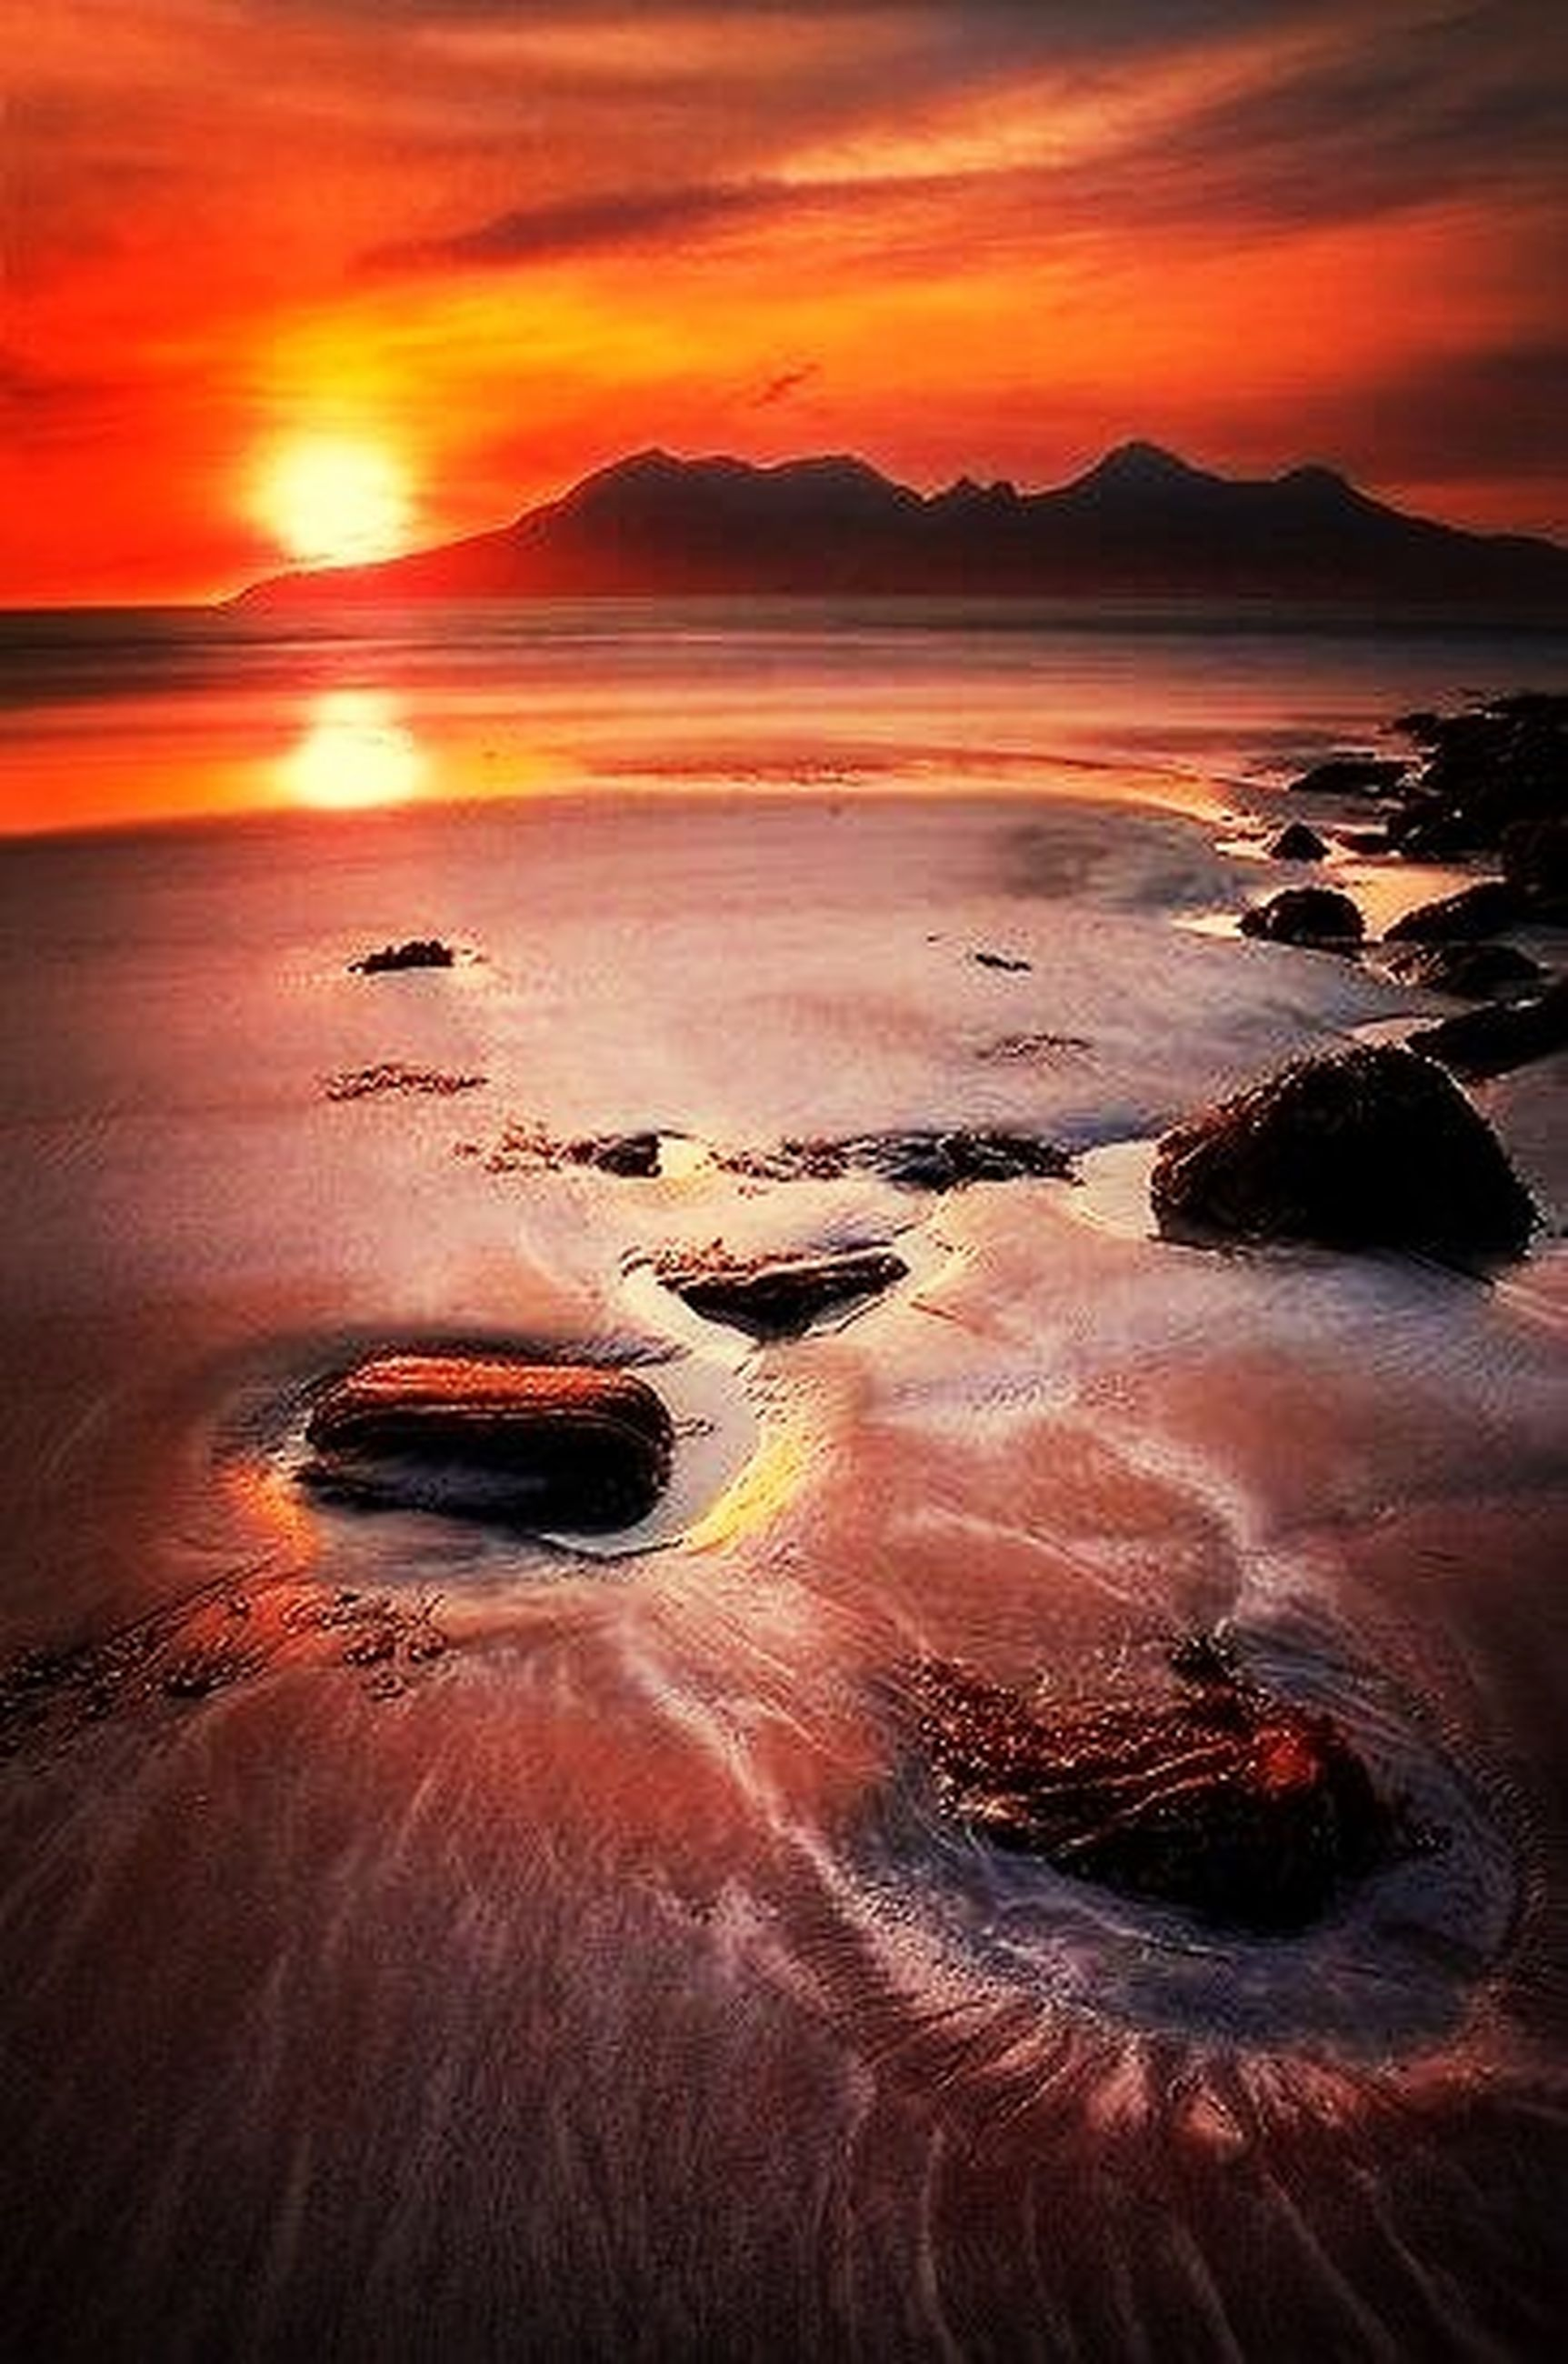 sunset, water, sea, scenics, tranquil scene, orange color, beauty in nature, beach, tranquility, sky, nature, idyllic, shore, reflection, sun, wave, sand, rock - object, outdoors, cloud - sky